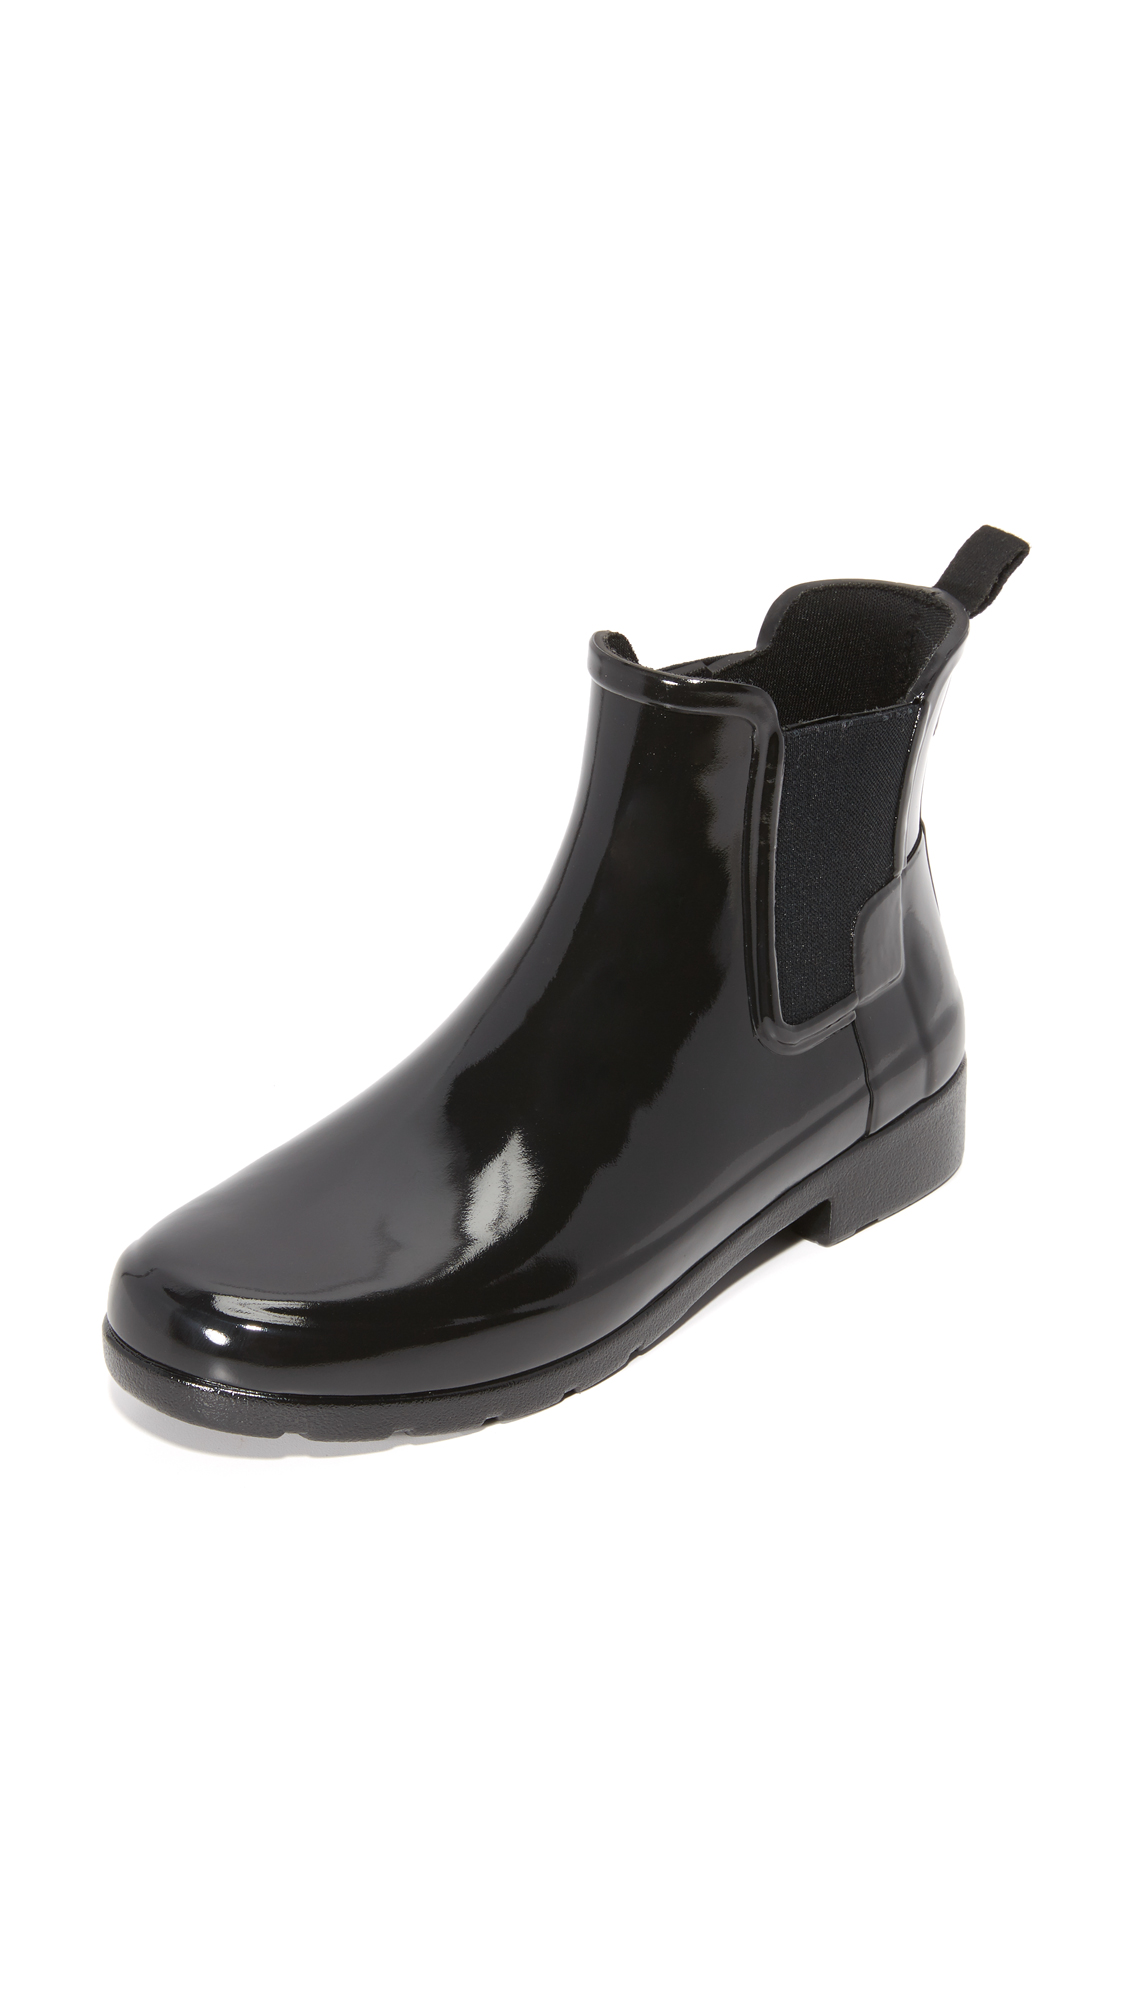 Hunter Boots Original Refined Chelsea Booties - Black at Shopbop